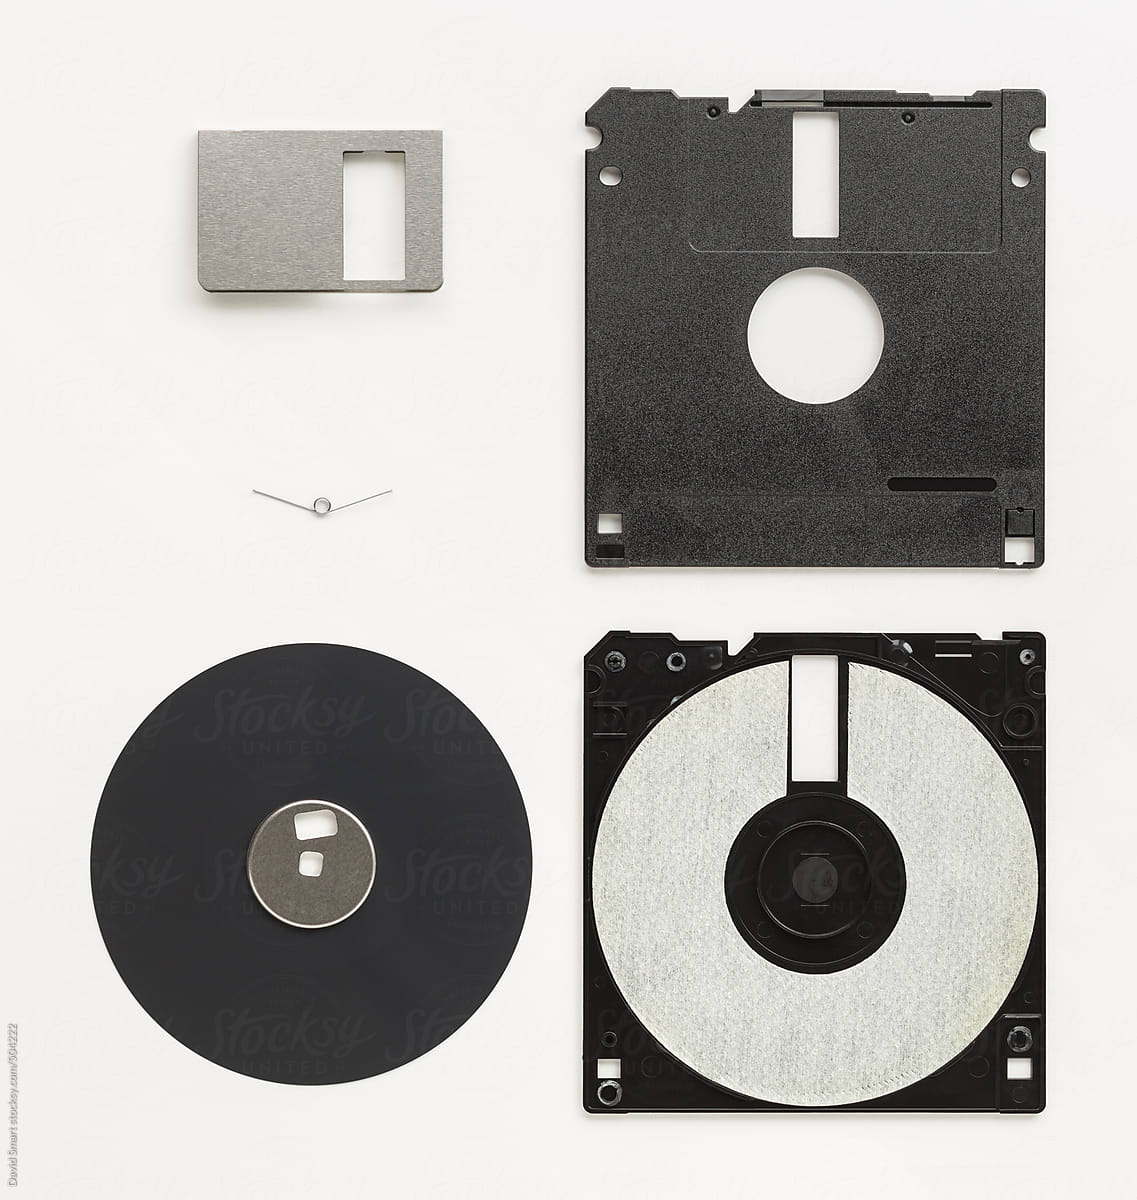 Deconstructed 3.5-inch floppy disk by David Smart - Stocksy United